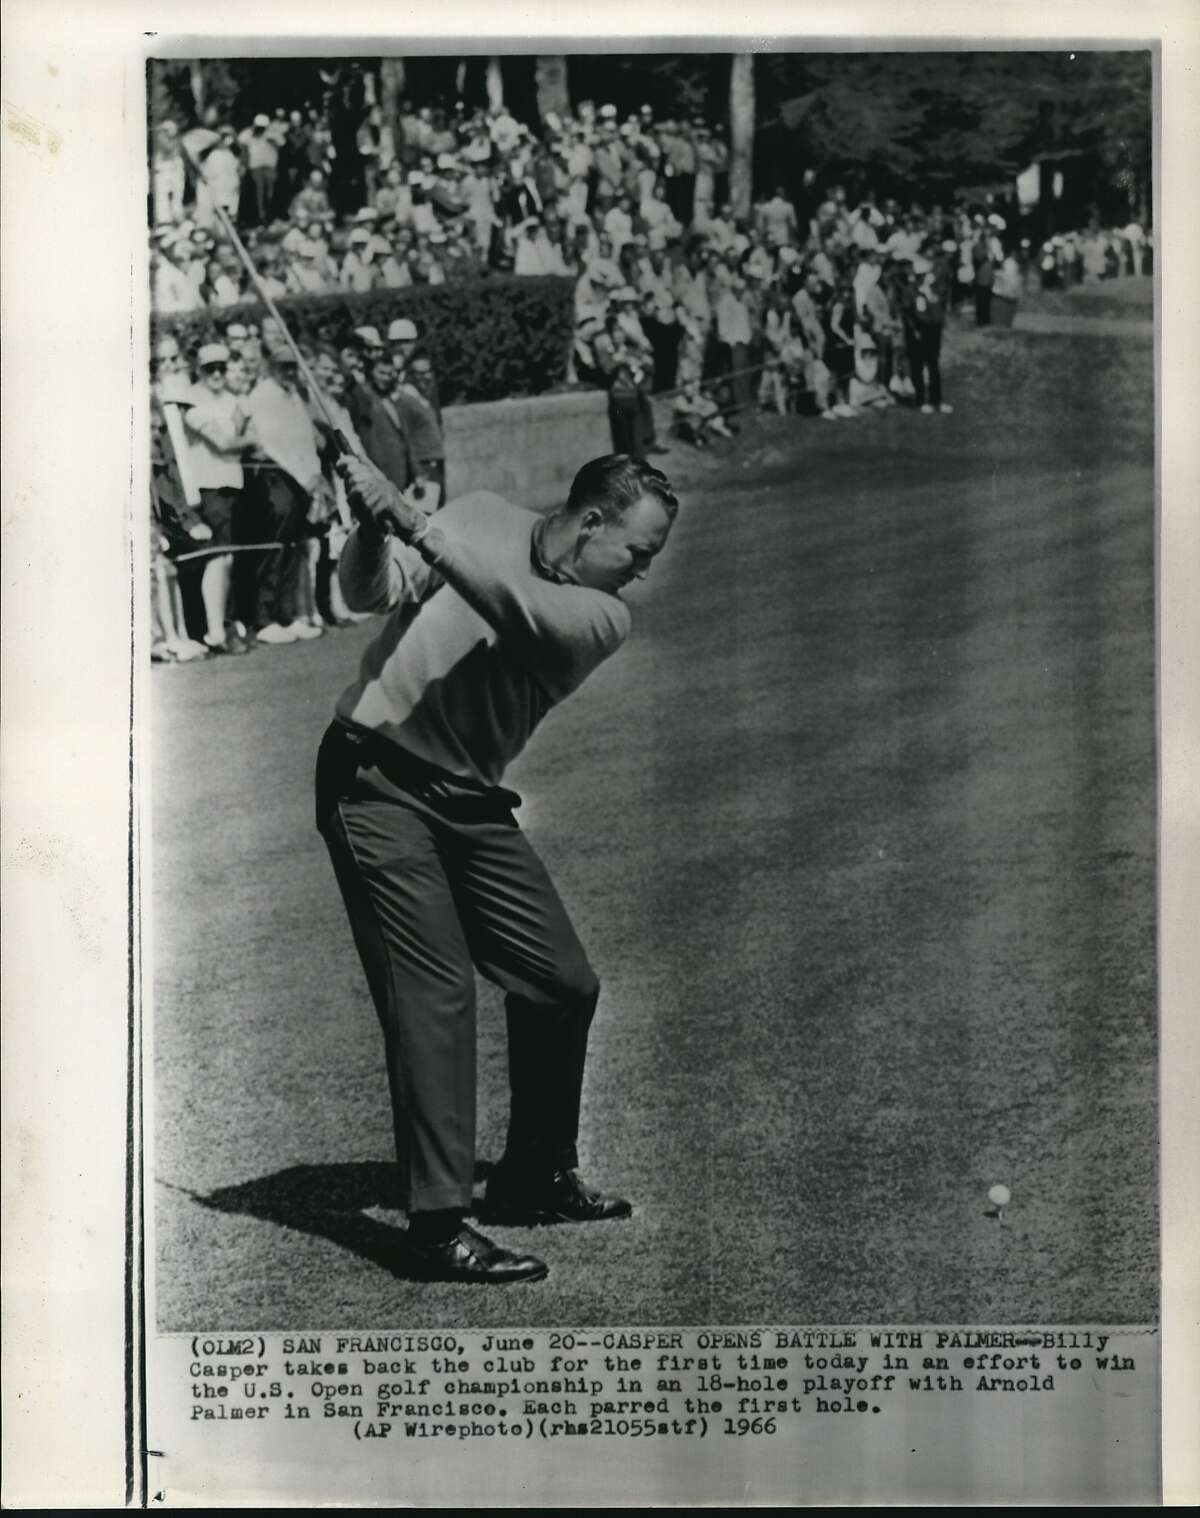 Casper, Billy (Golf). San Francisco. Billy Casper takes back the club for the first time today in an effort to win the U.S. Open golf championship in an 18-hole playoff with Arnold Palmer in San Francisco. Each parred the first hole.